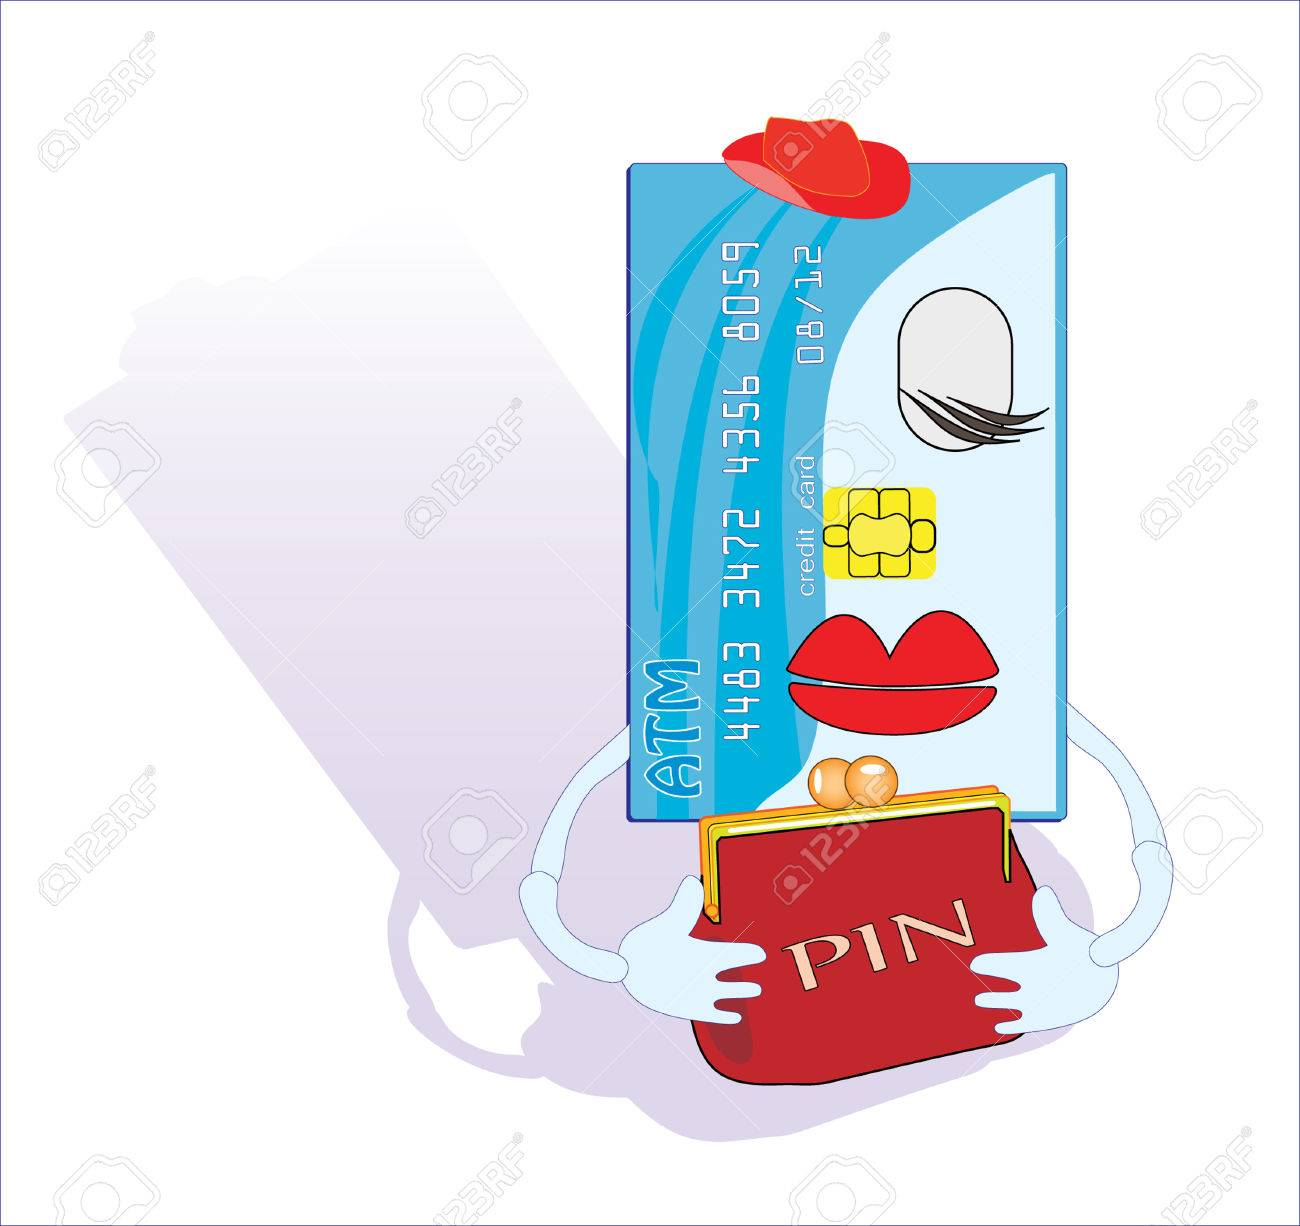 Credit card with a PIN code in a purse. Vector illustration Stock Vector - 5240374